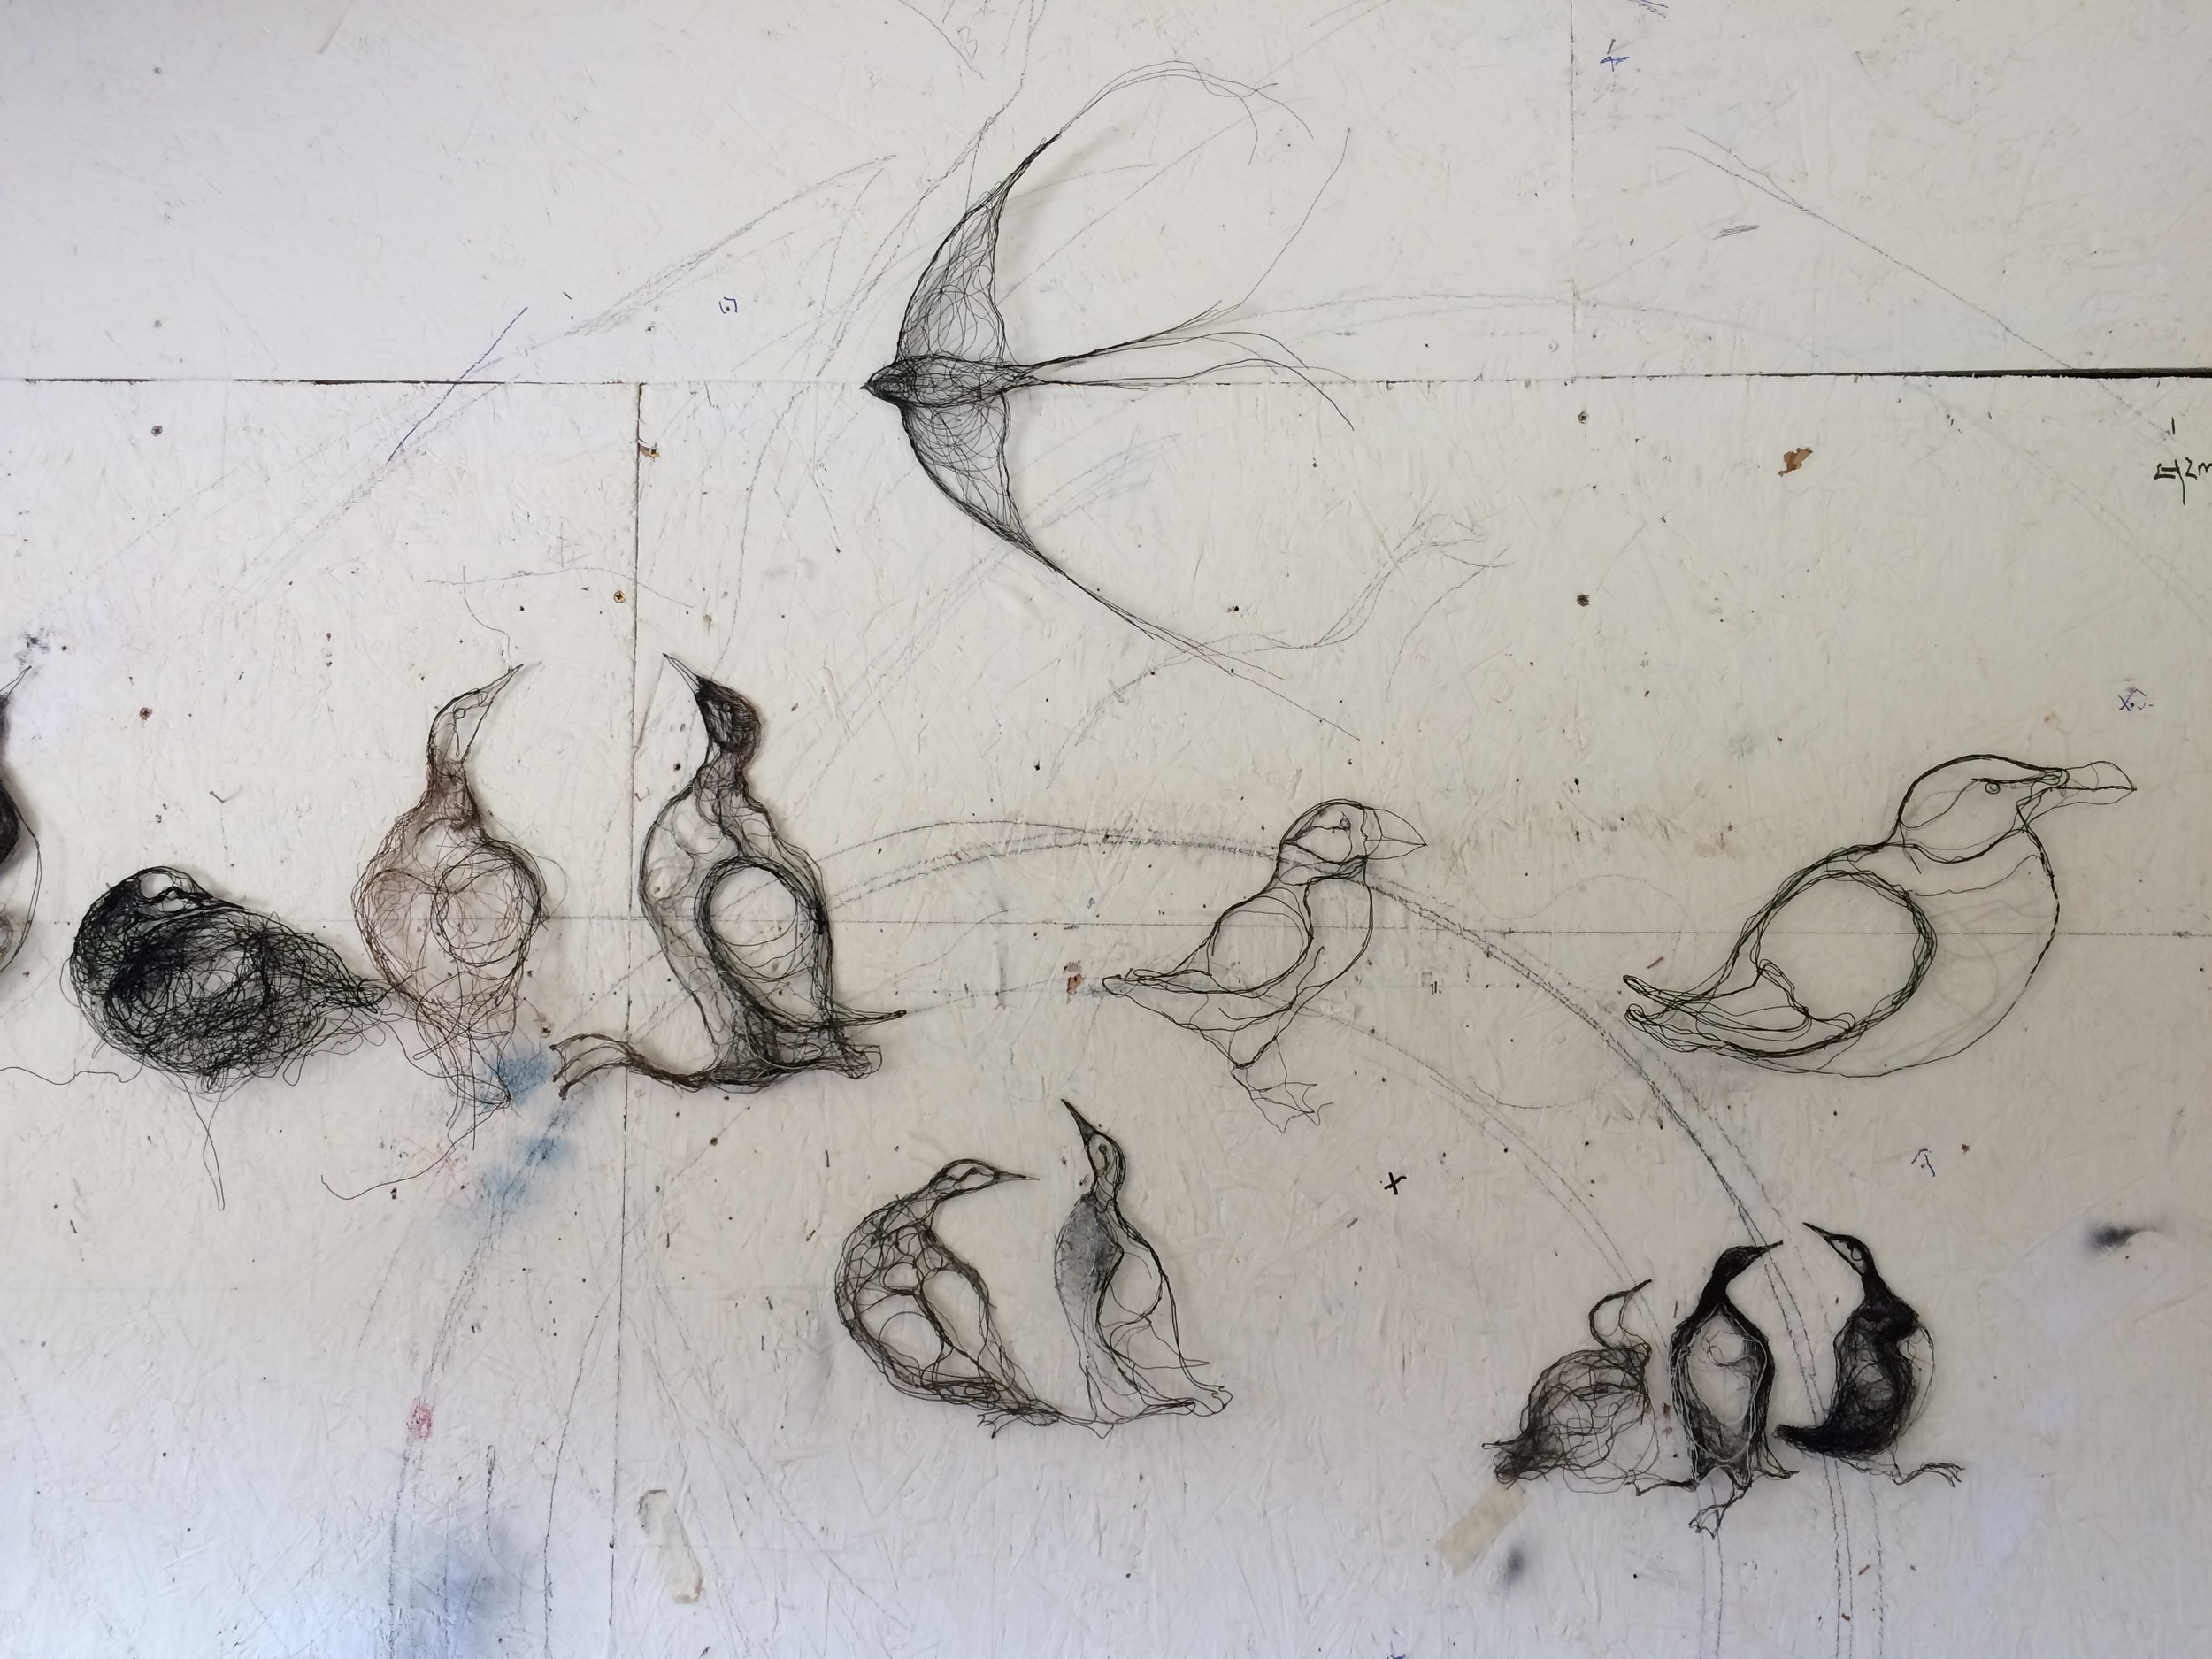 A selection of wire wall drawings made while on the island.